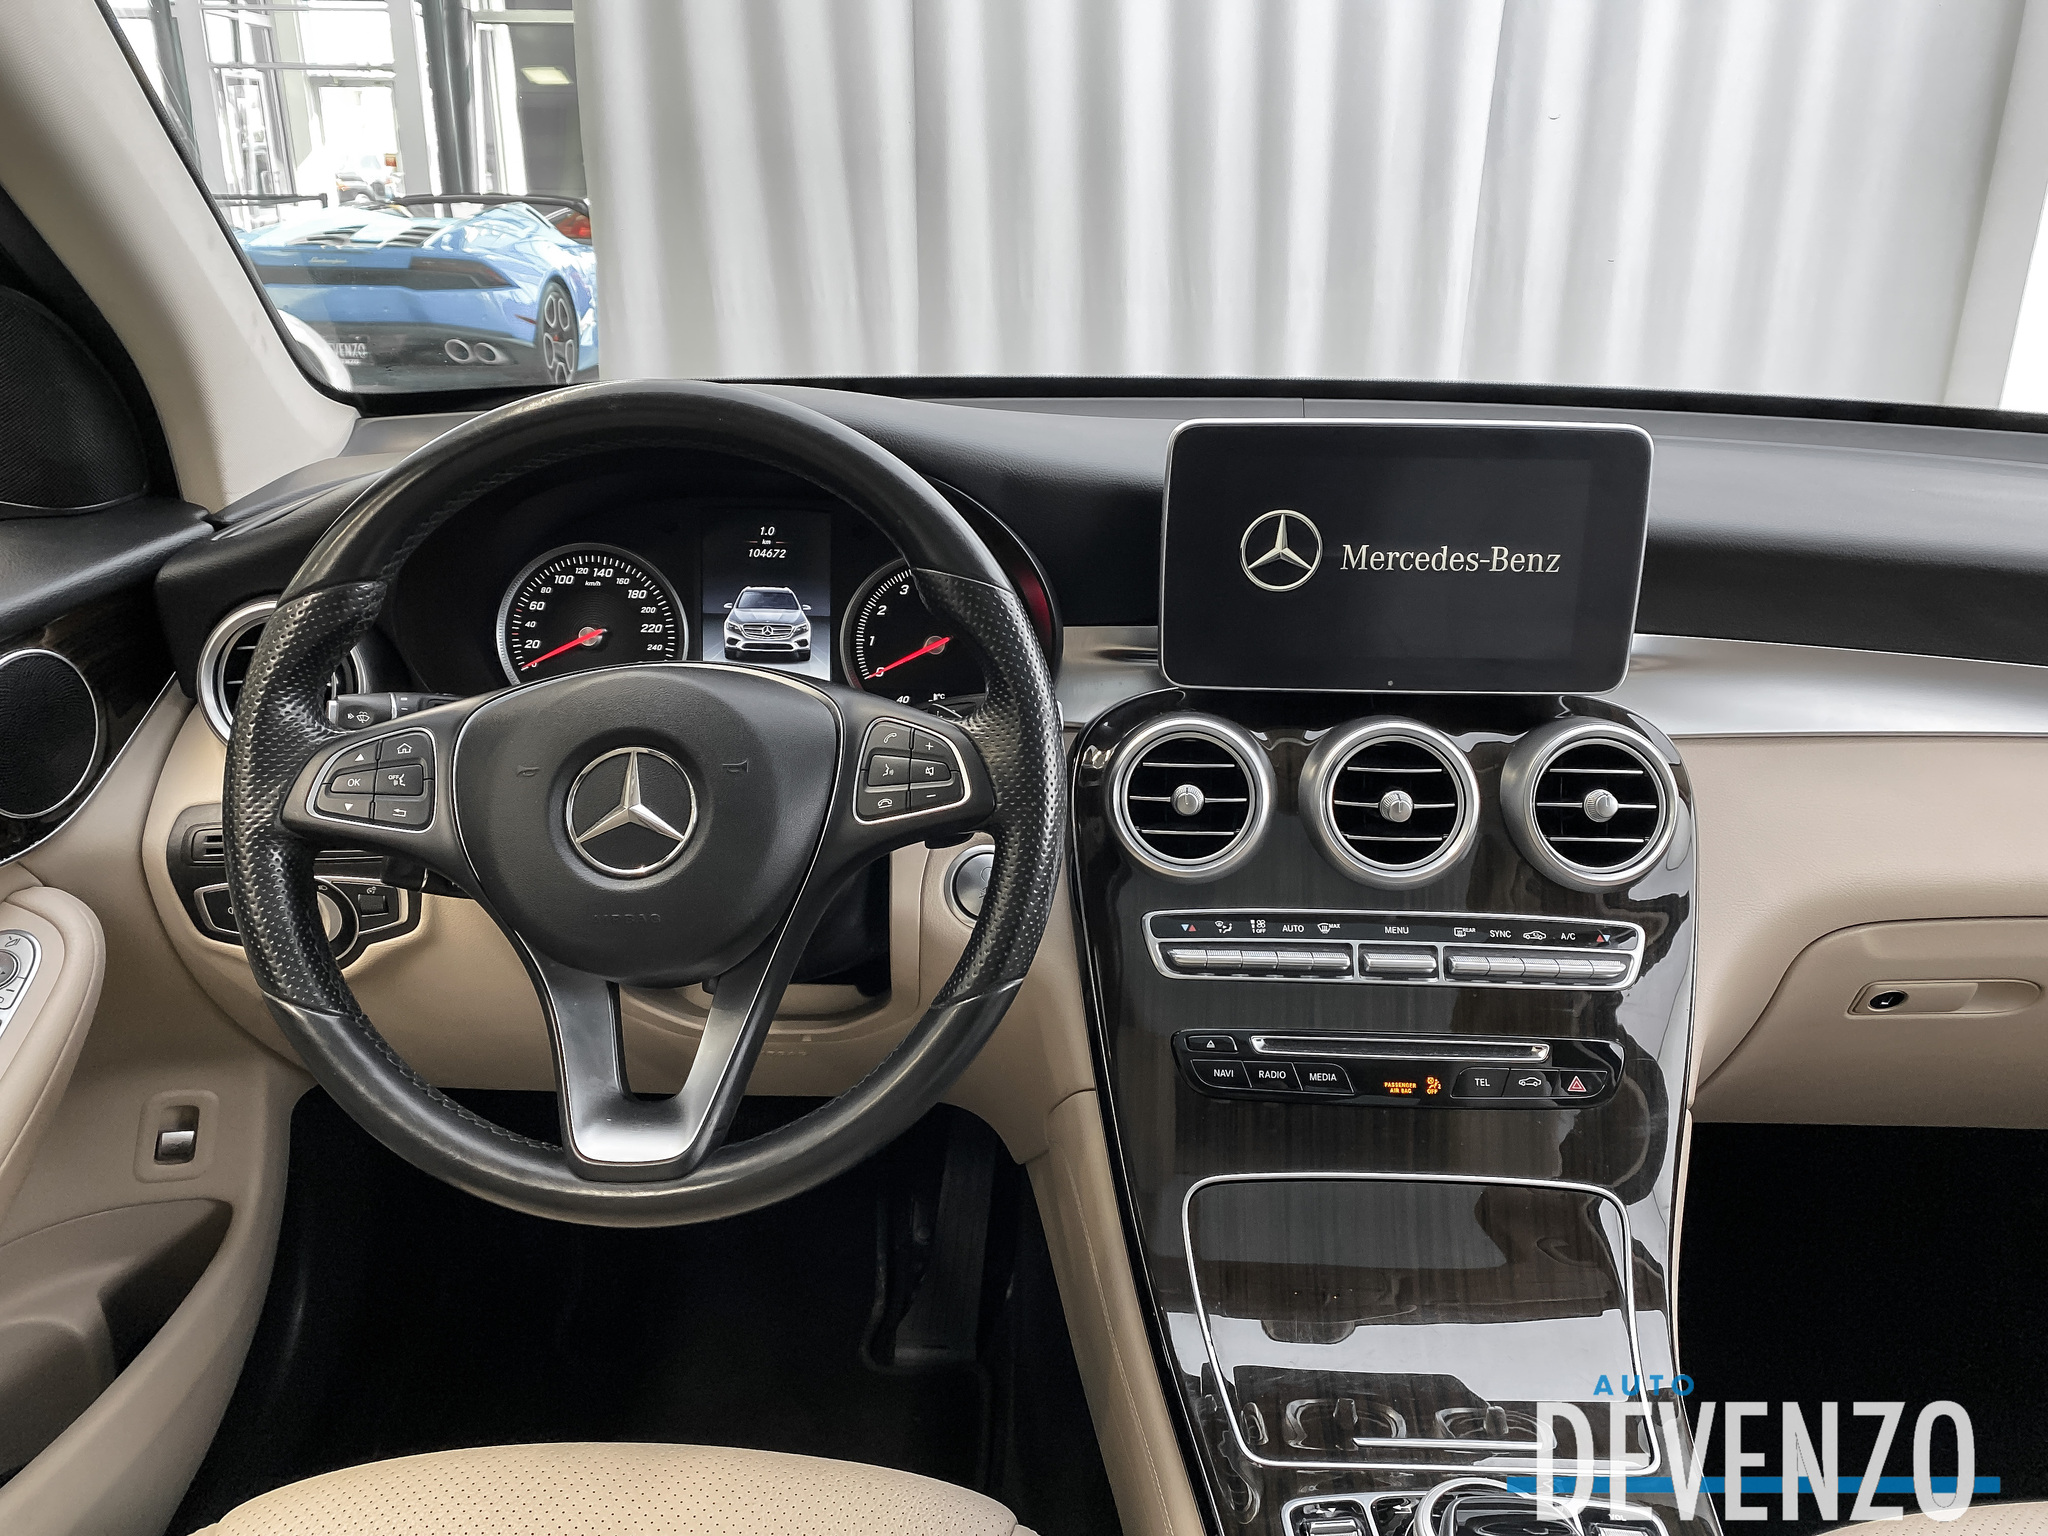 2016 Mercedes-Benz GLC 4MATIC GLC300 TOIT PANO / NAVI / CAMERA complet